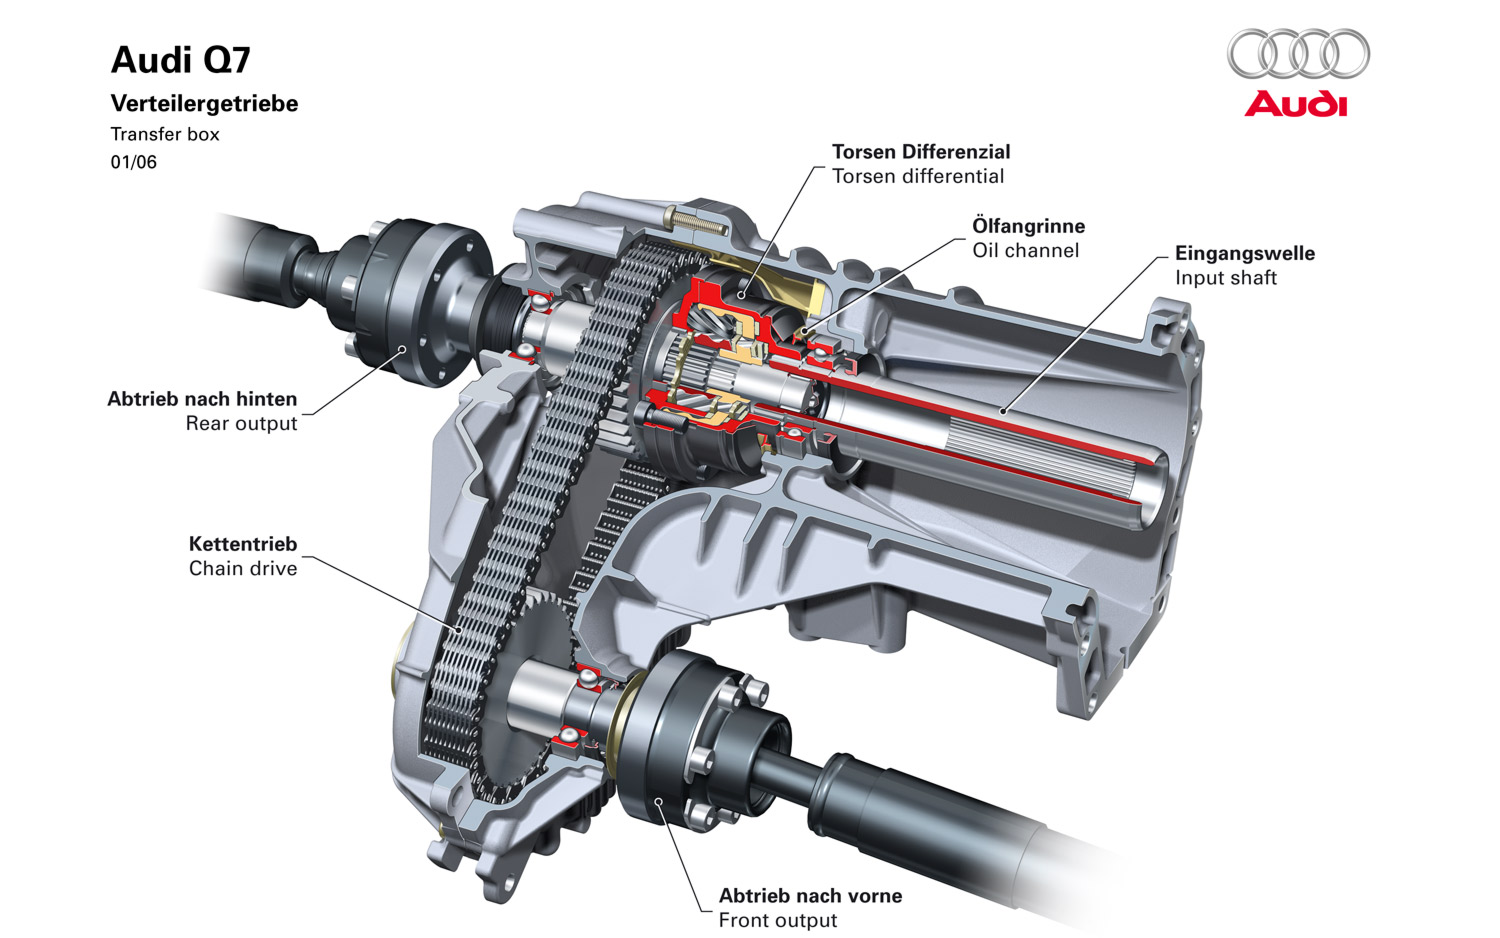 """Another way to control how much power is sent to which axle is to use a differential. A differential is perhaps best known as a mechanical device that controls the delivery of power between two wheels. In every pickup truck, there's at least a differential between the two rear wheels. In an AWD vehicle, a differential can send power between the two axles instead. <br><br>In the picture above, the Audi PTU assembly (or Transfer Box, in Audi Speak) uses a torque-sensing or """"Torsen"""" differential to engage the outer sprocket mounted to the rear output shaft. When the Torsen differential senses slippage (one axle spinning faster than another), its clever mechanical design causes it to lock instantaneously. This transfers power via the chain to the front output shaft, causing the entire assembly to spin as a single unit. When the speeds of the front and rear axles are equalized, traction is regained, and the differential unlocks itself until next time more traction is needed."""